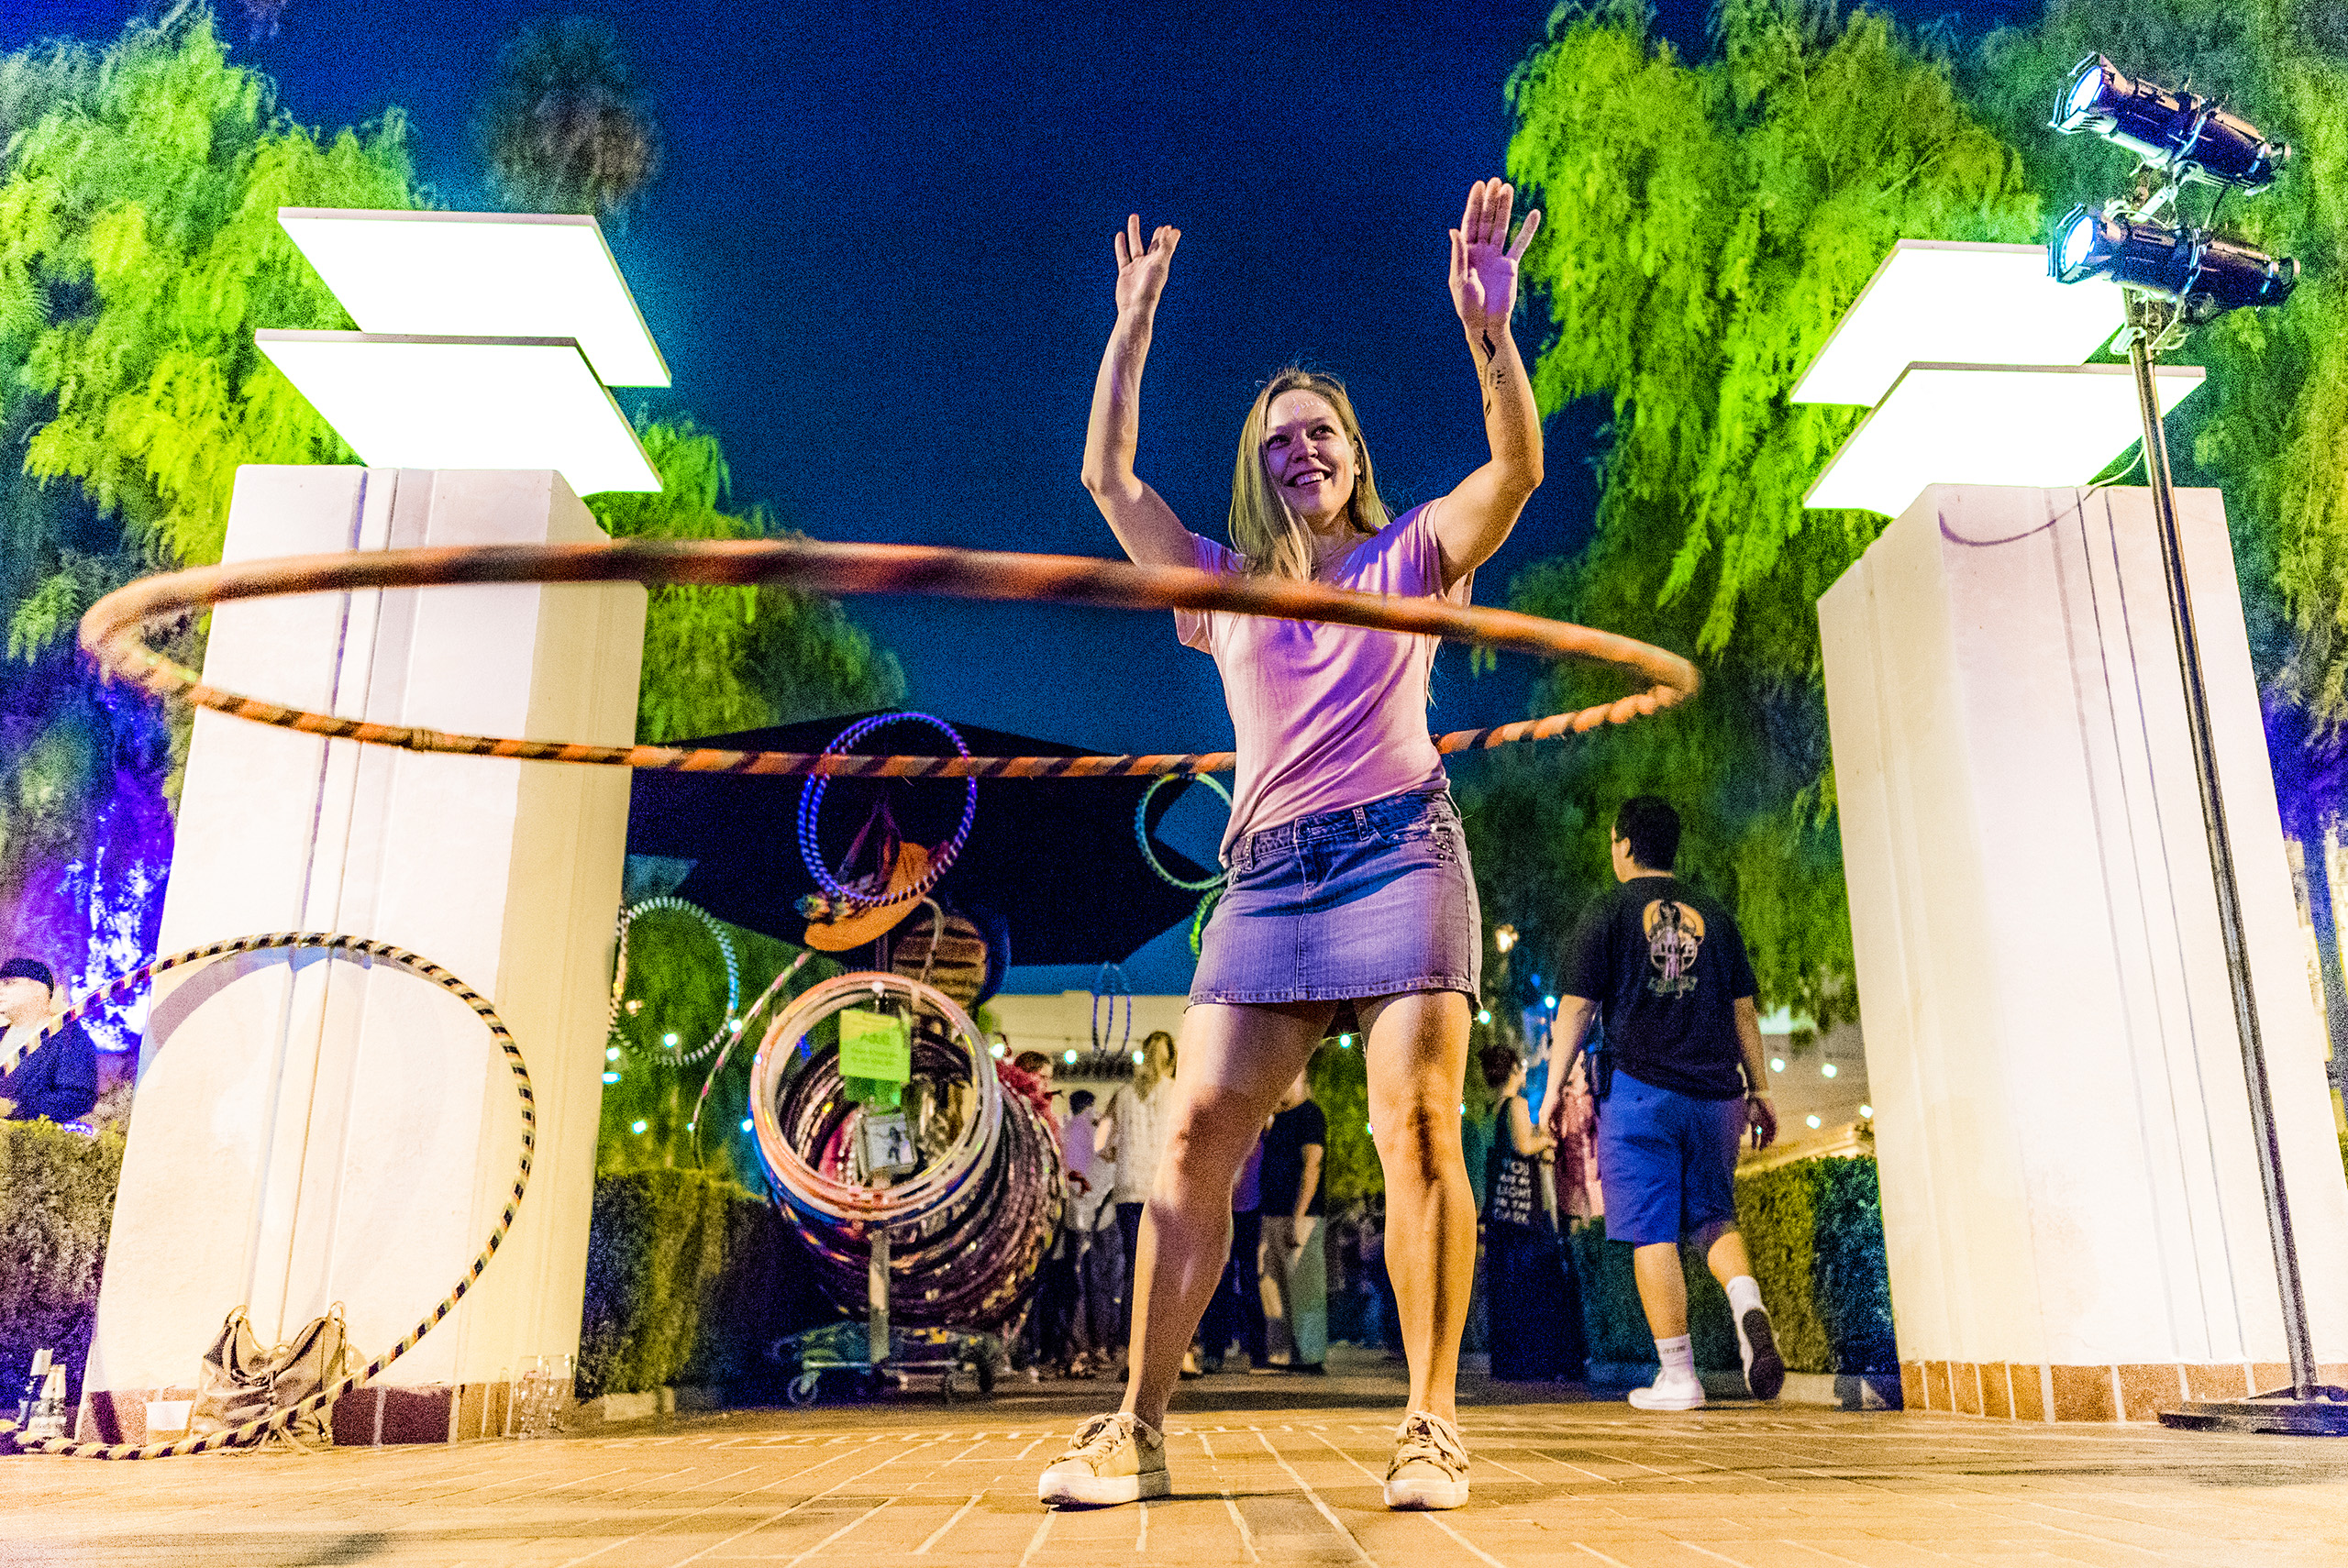 KCRW Nite at Union Station, with DJ's and giant hula hoops